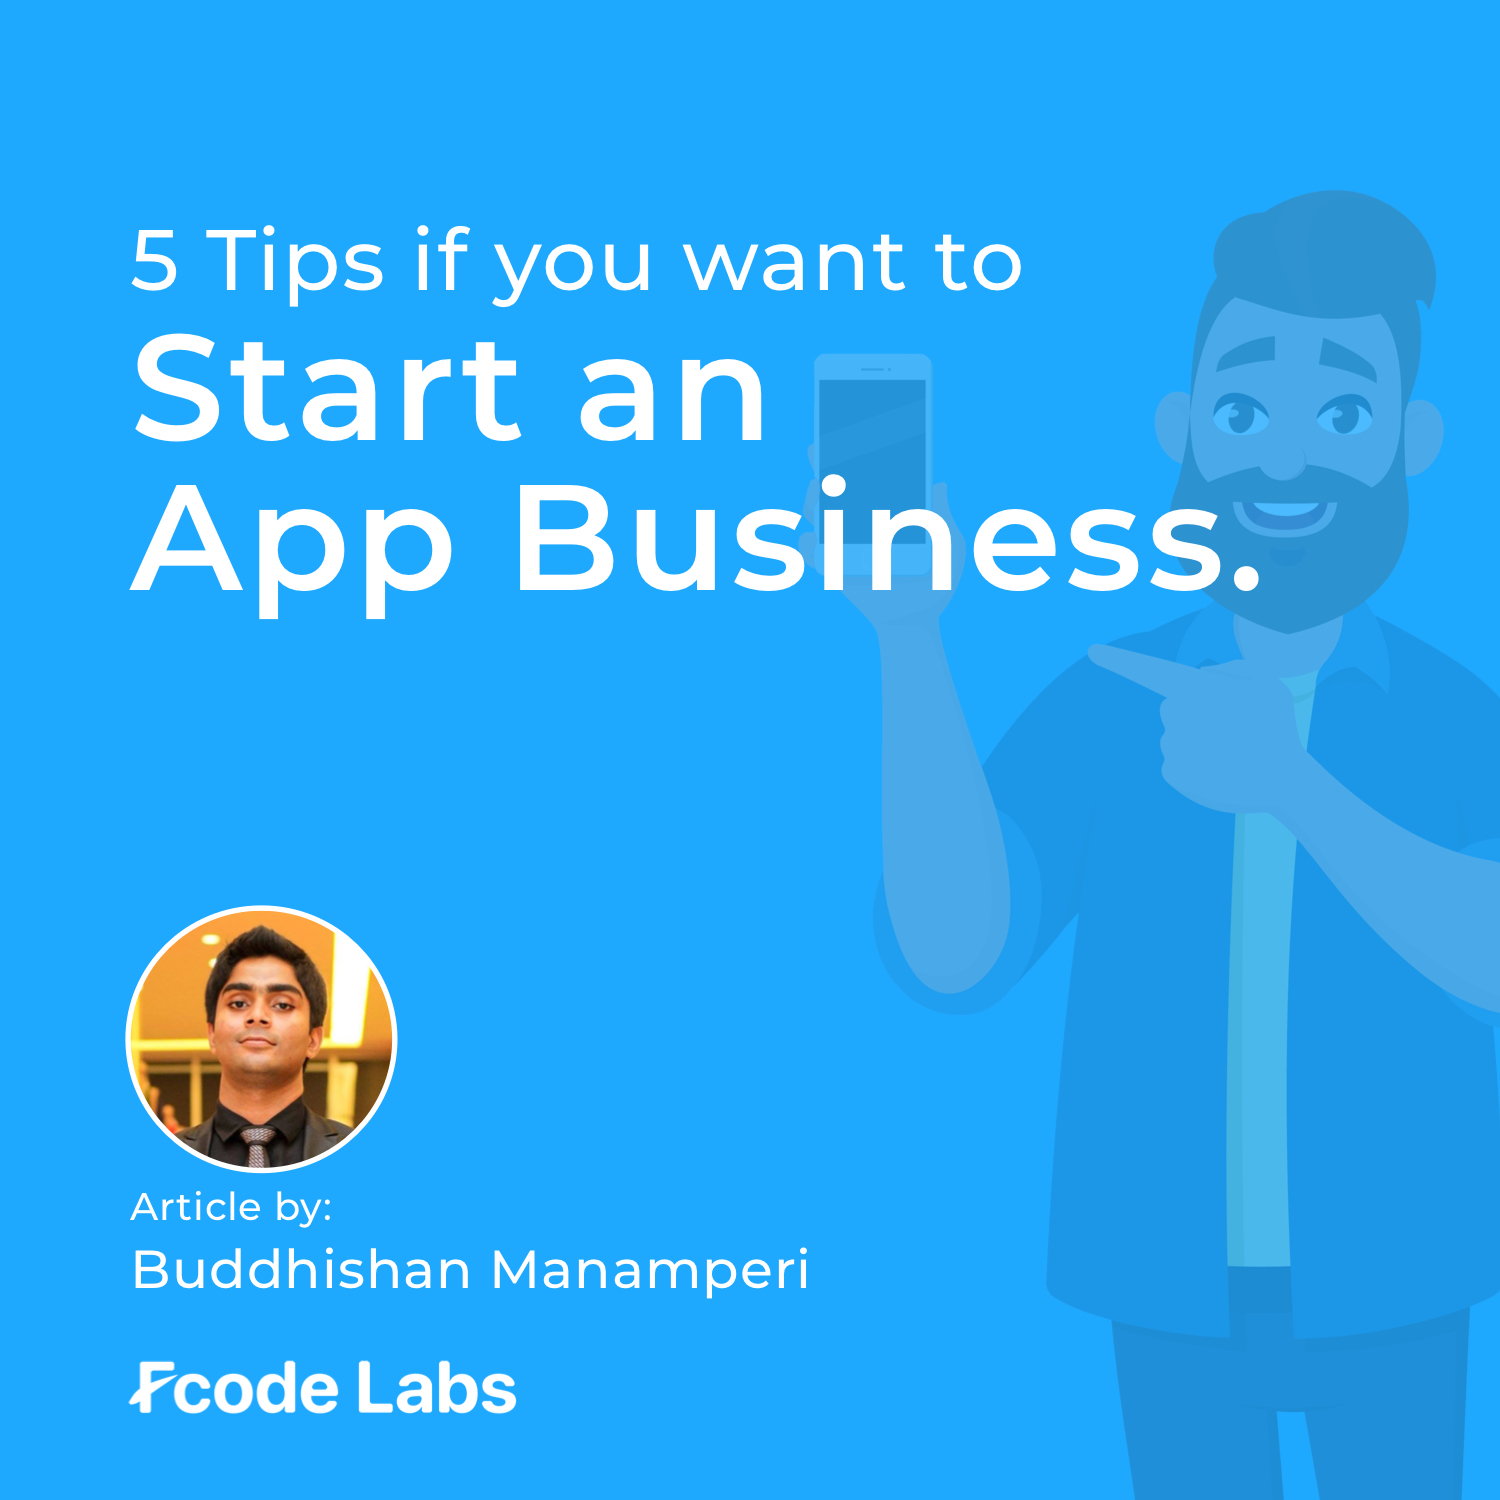 5 tips if you want to start an App business